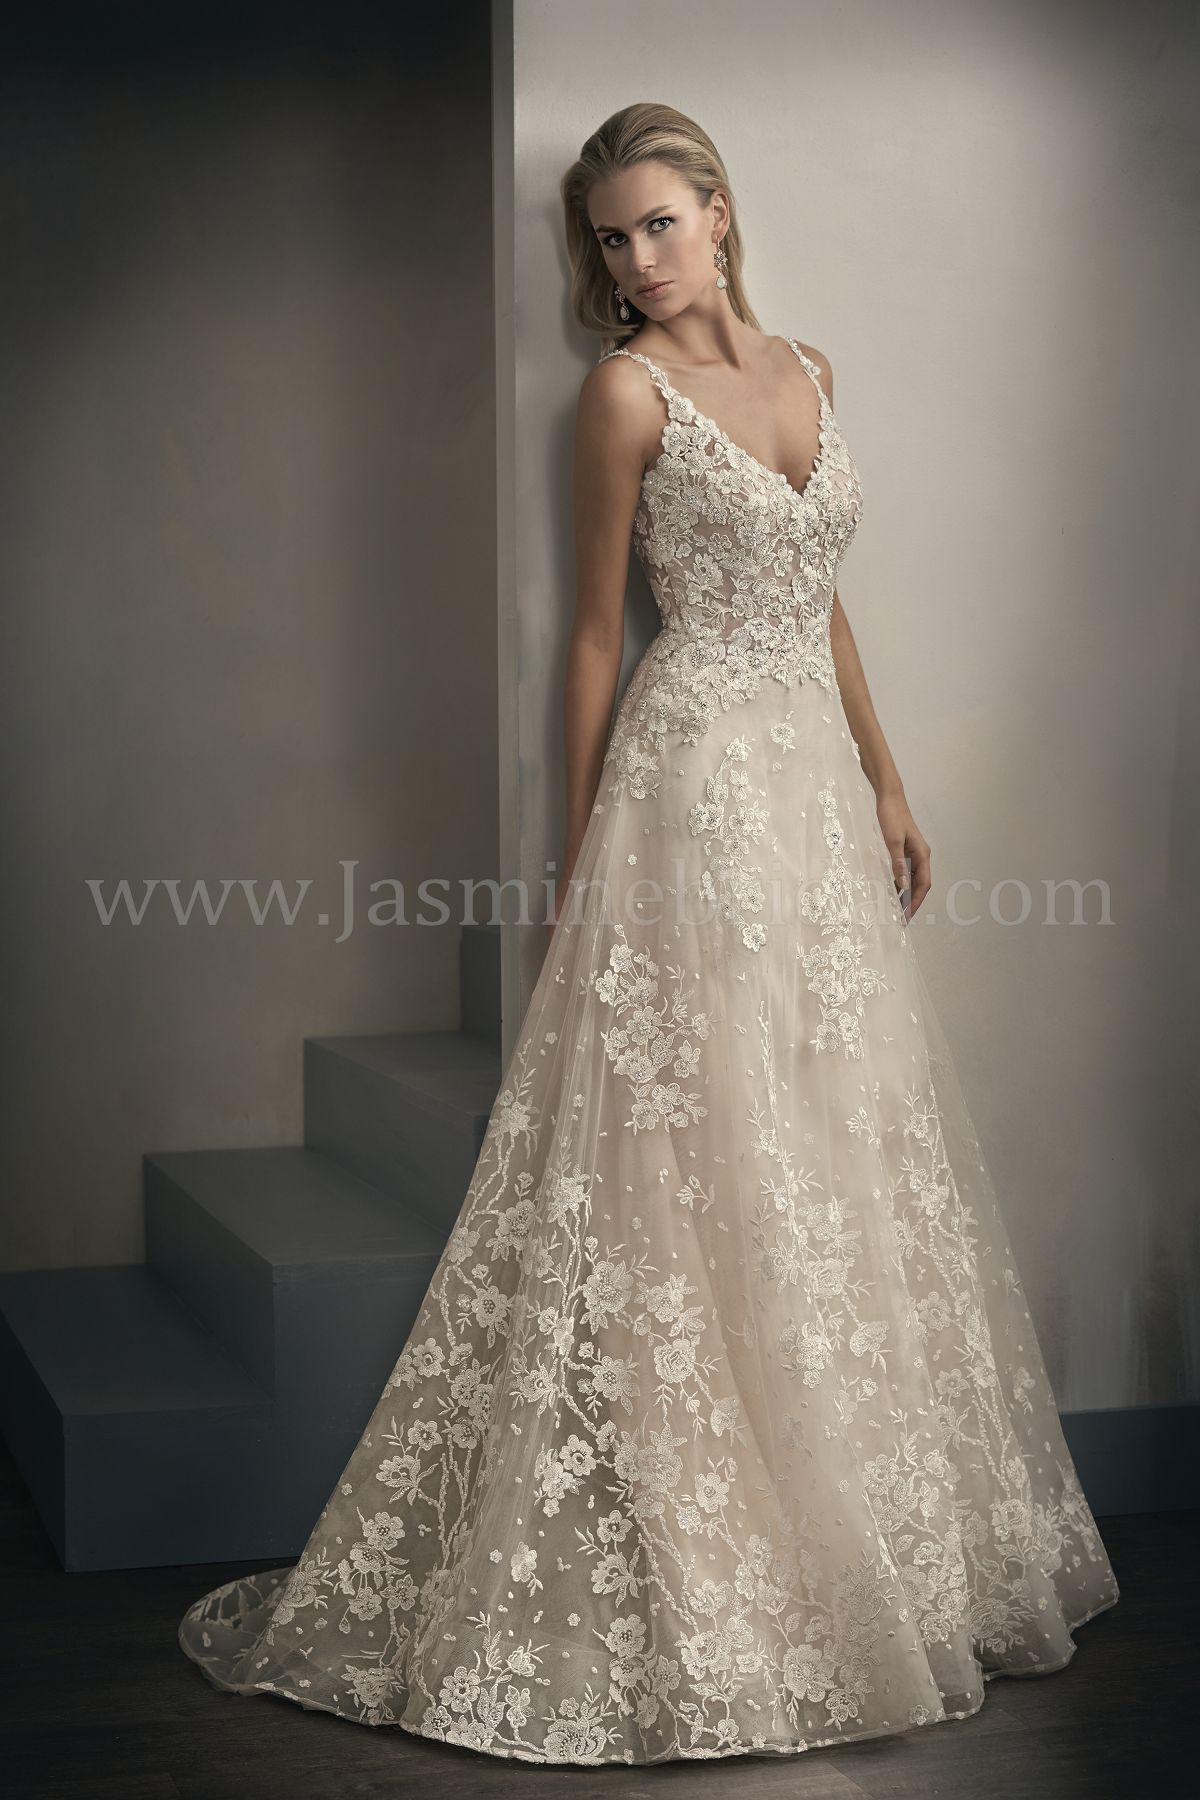 WEDDING DRESSES - Lace And Sheer Wedding Dresses